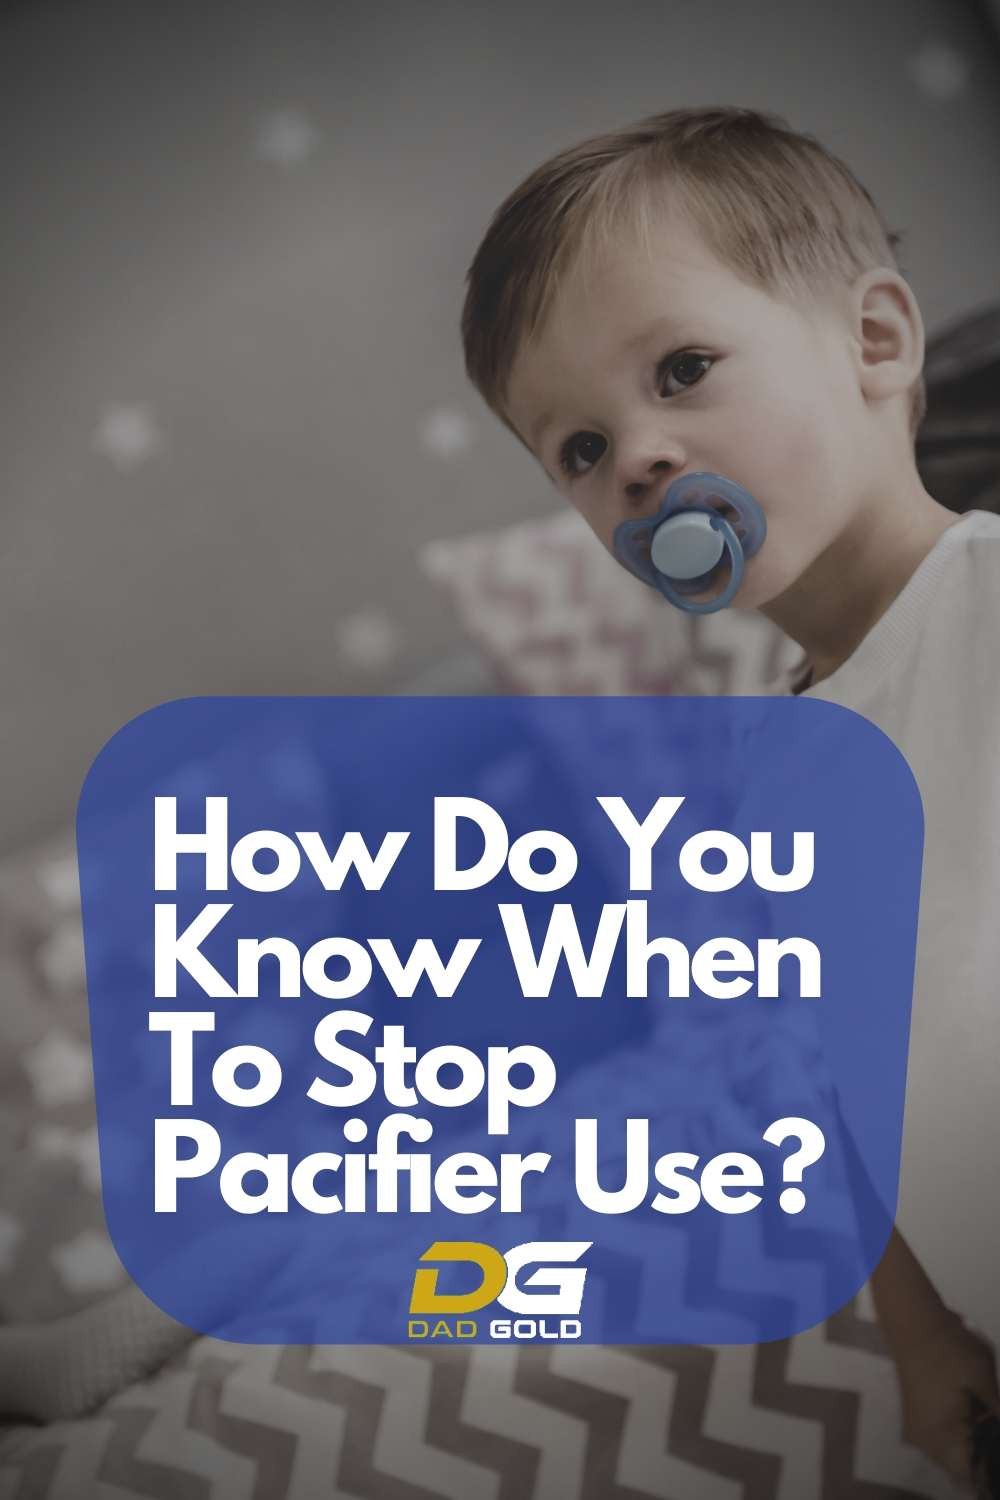 How Do You Know When To Stop Pacifier Use